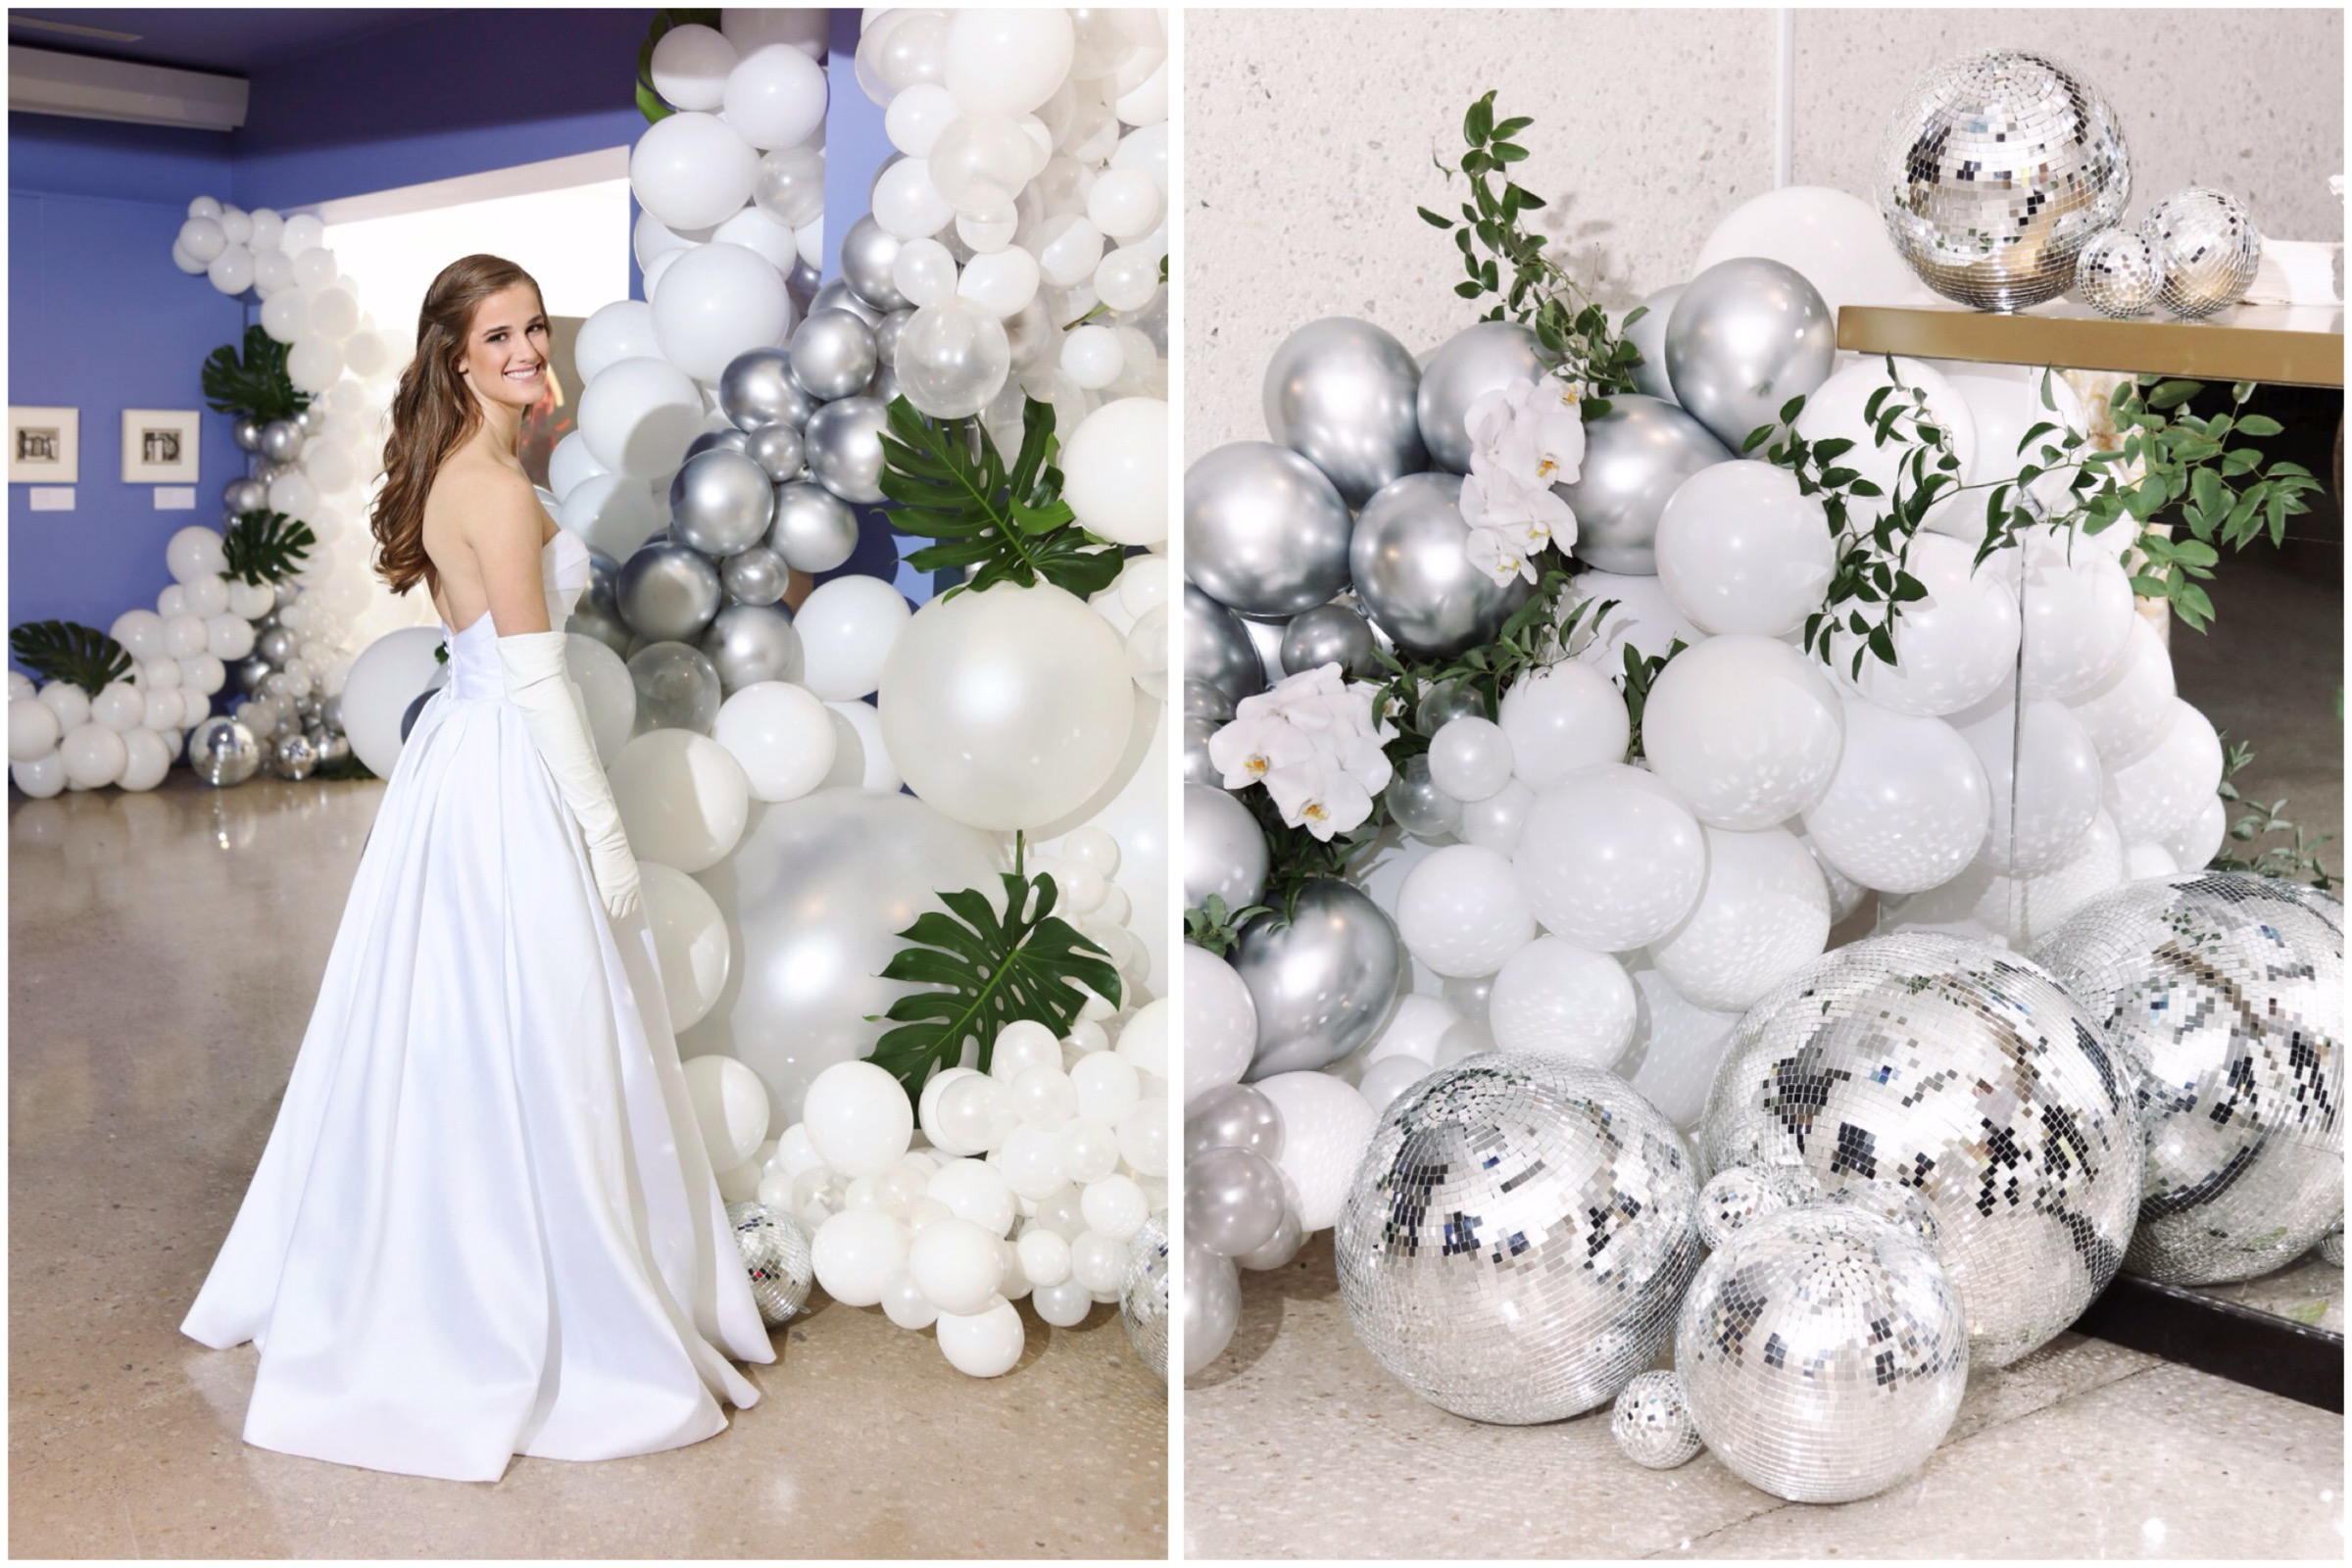 Artful Approach to Having a Ball l www.avenueievents.com